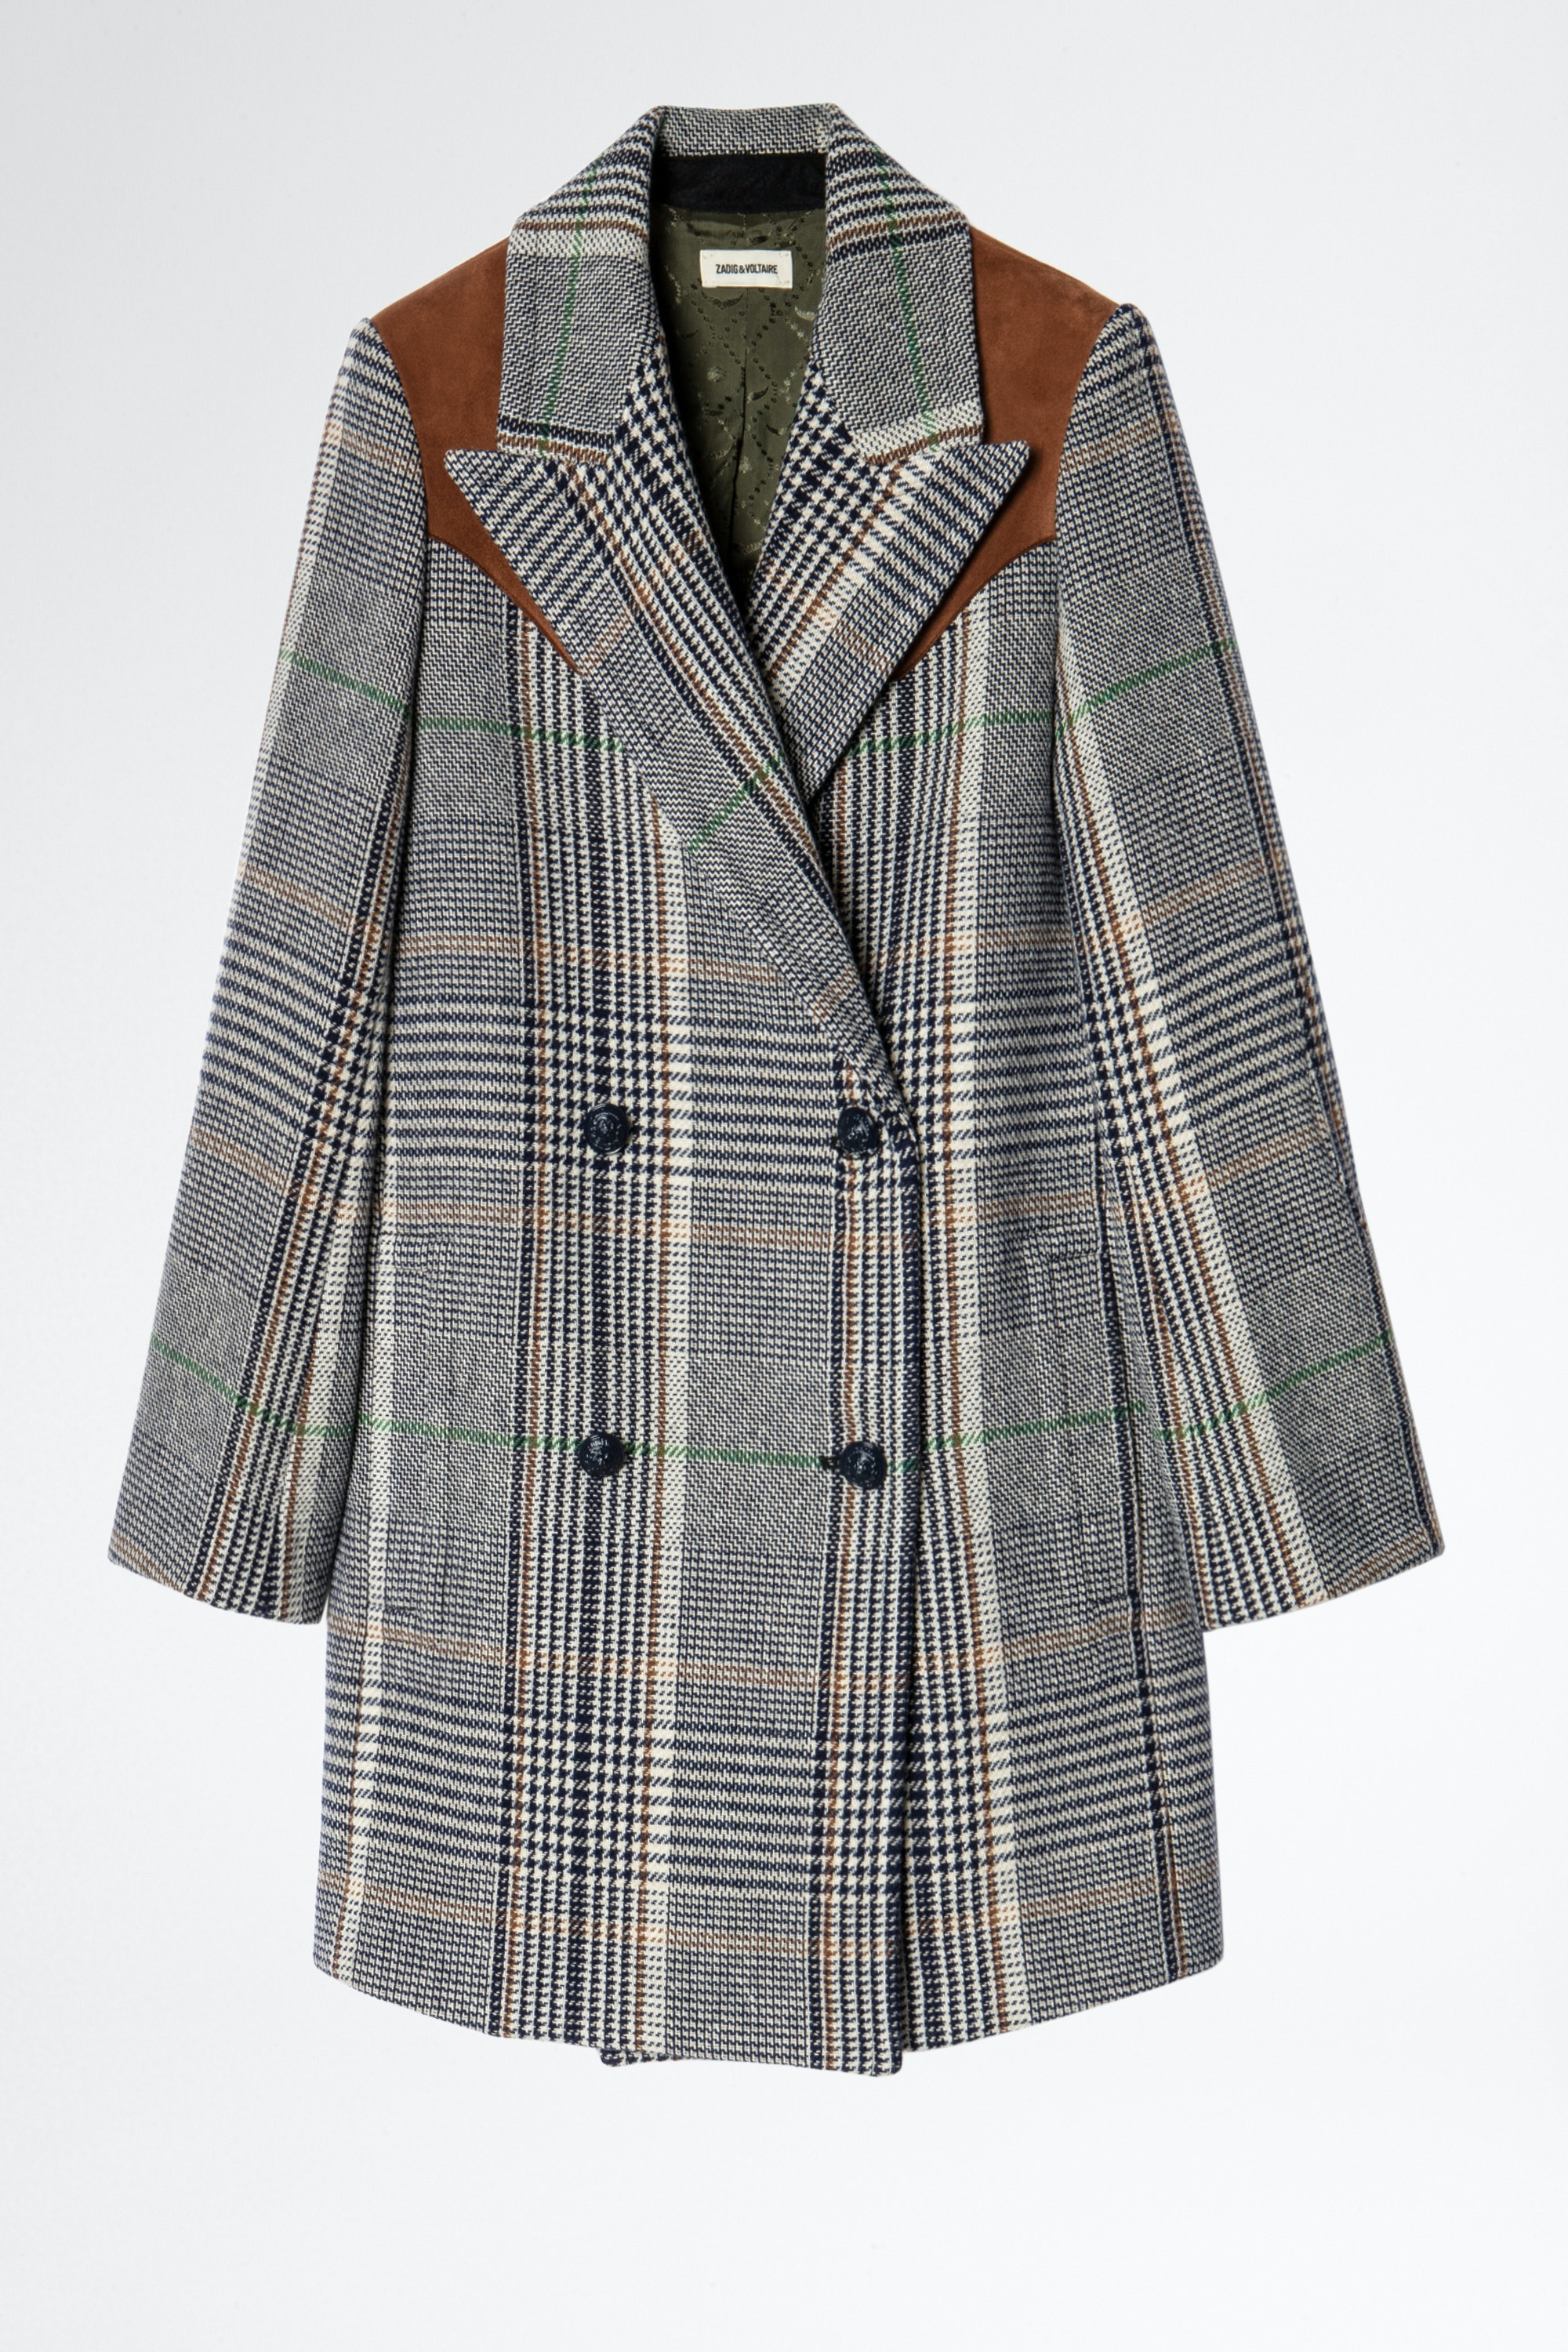 Motty Carreaux Coat